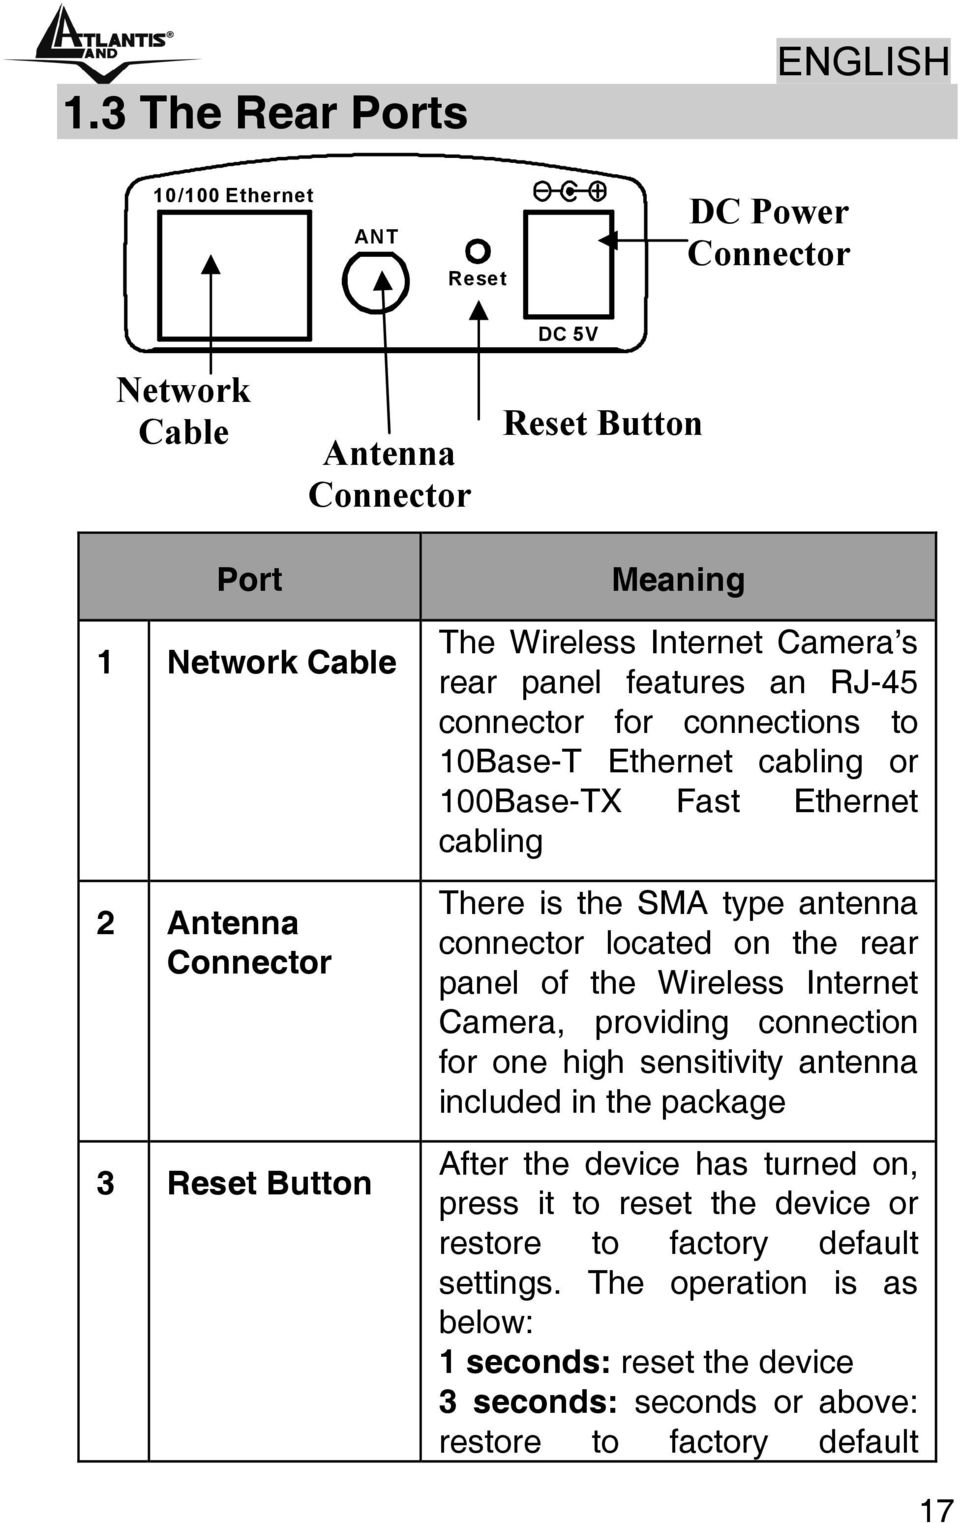 antenna connector located on the rear panel of the Wireless Internet Camera, providing connection for one high sensitivity antenna included in the package After the device has turned